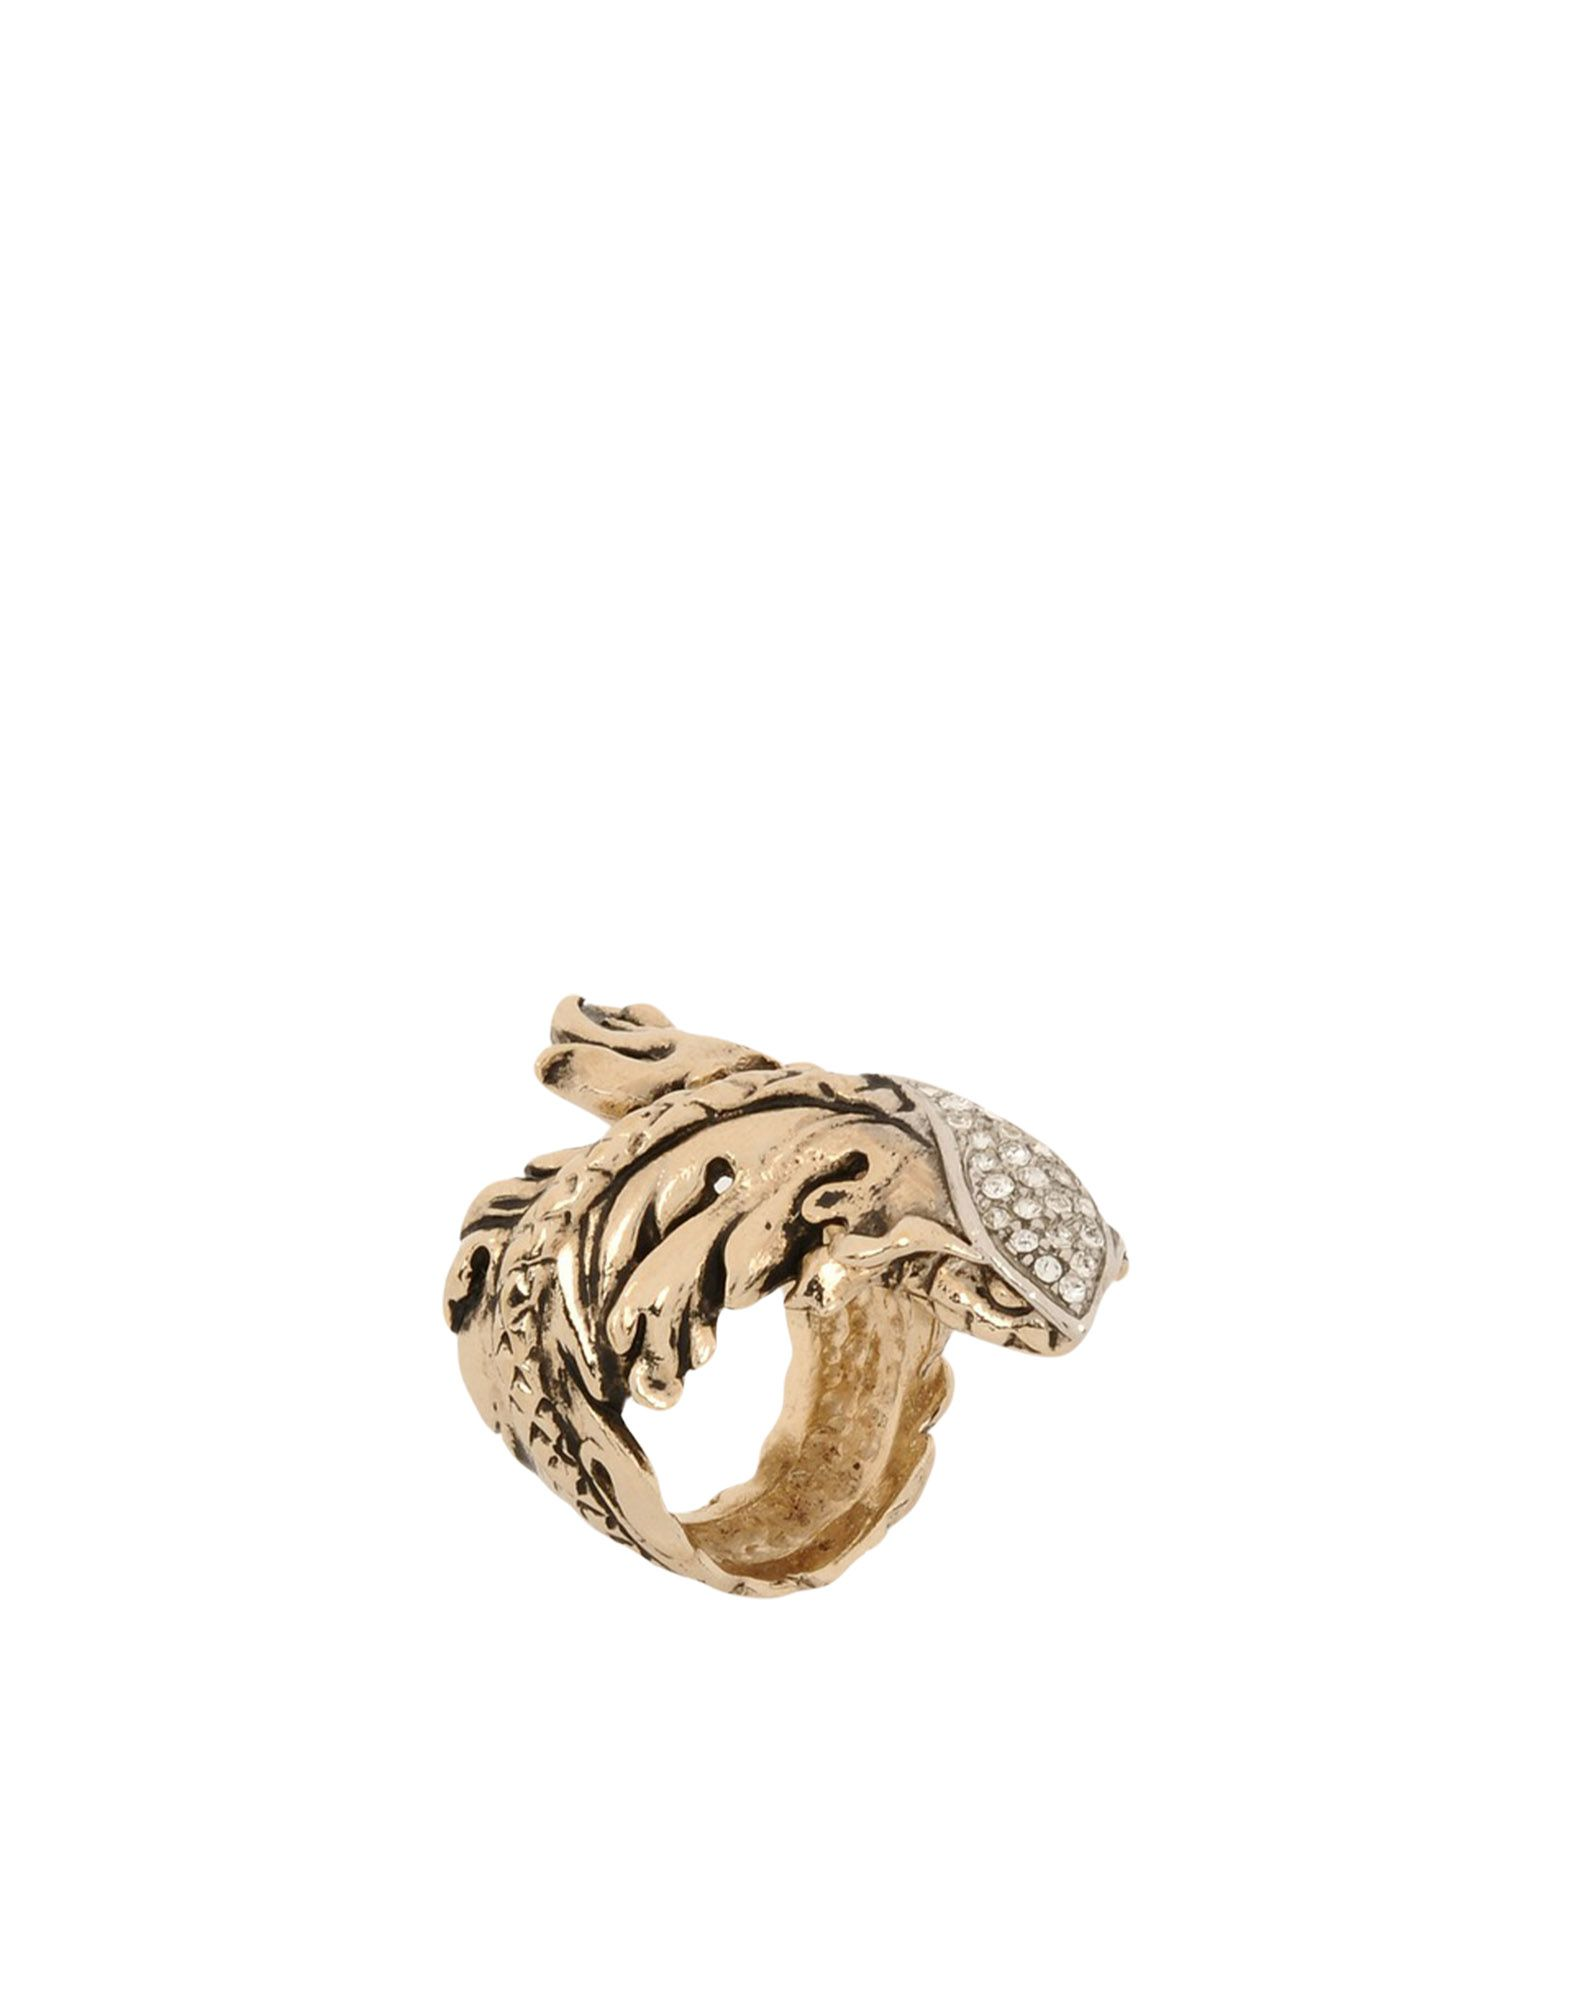 Iosselliani JEWELRY - Rings su YOOX.COM